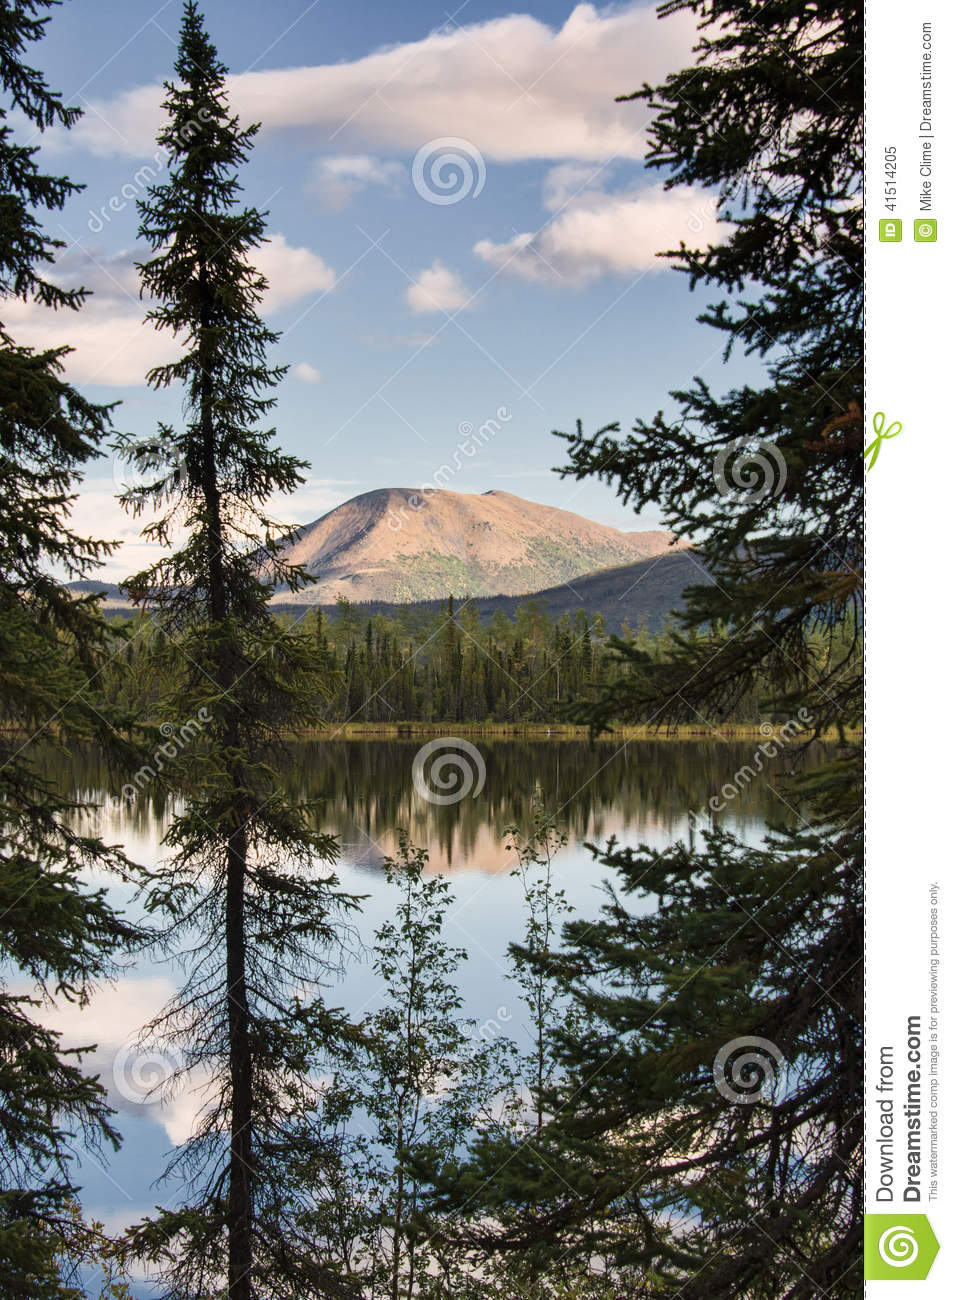 Download Snag Junction Lake stock image. Image of mountain, scenic - 41514205